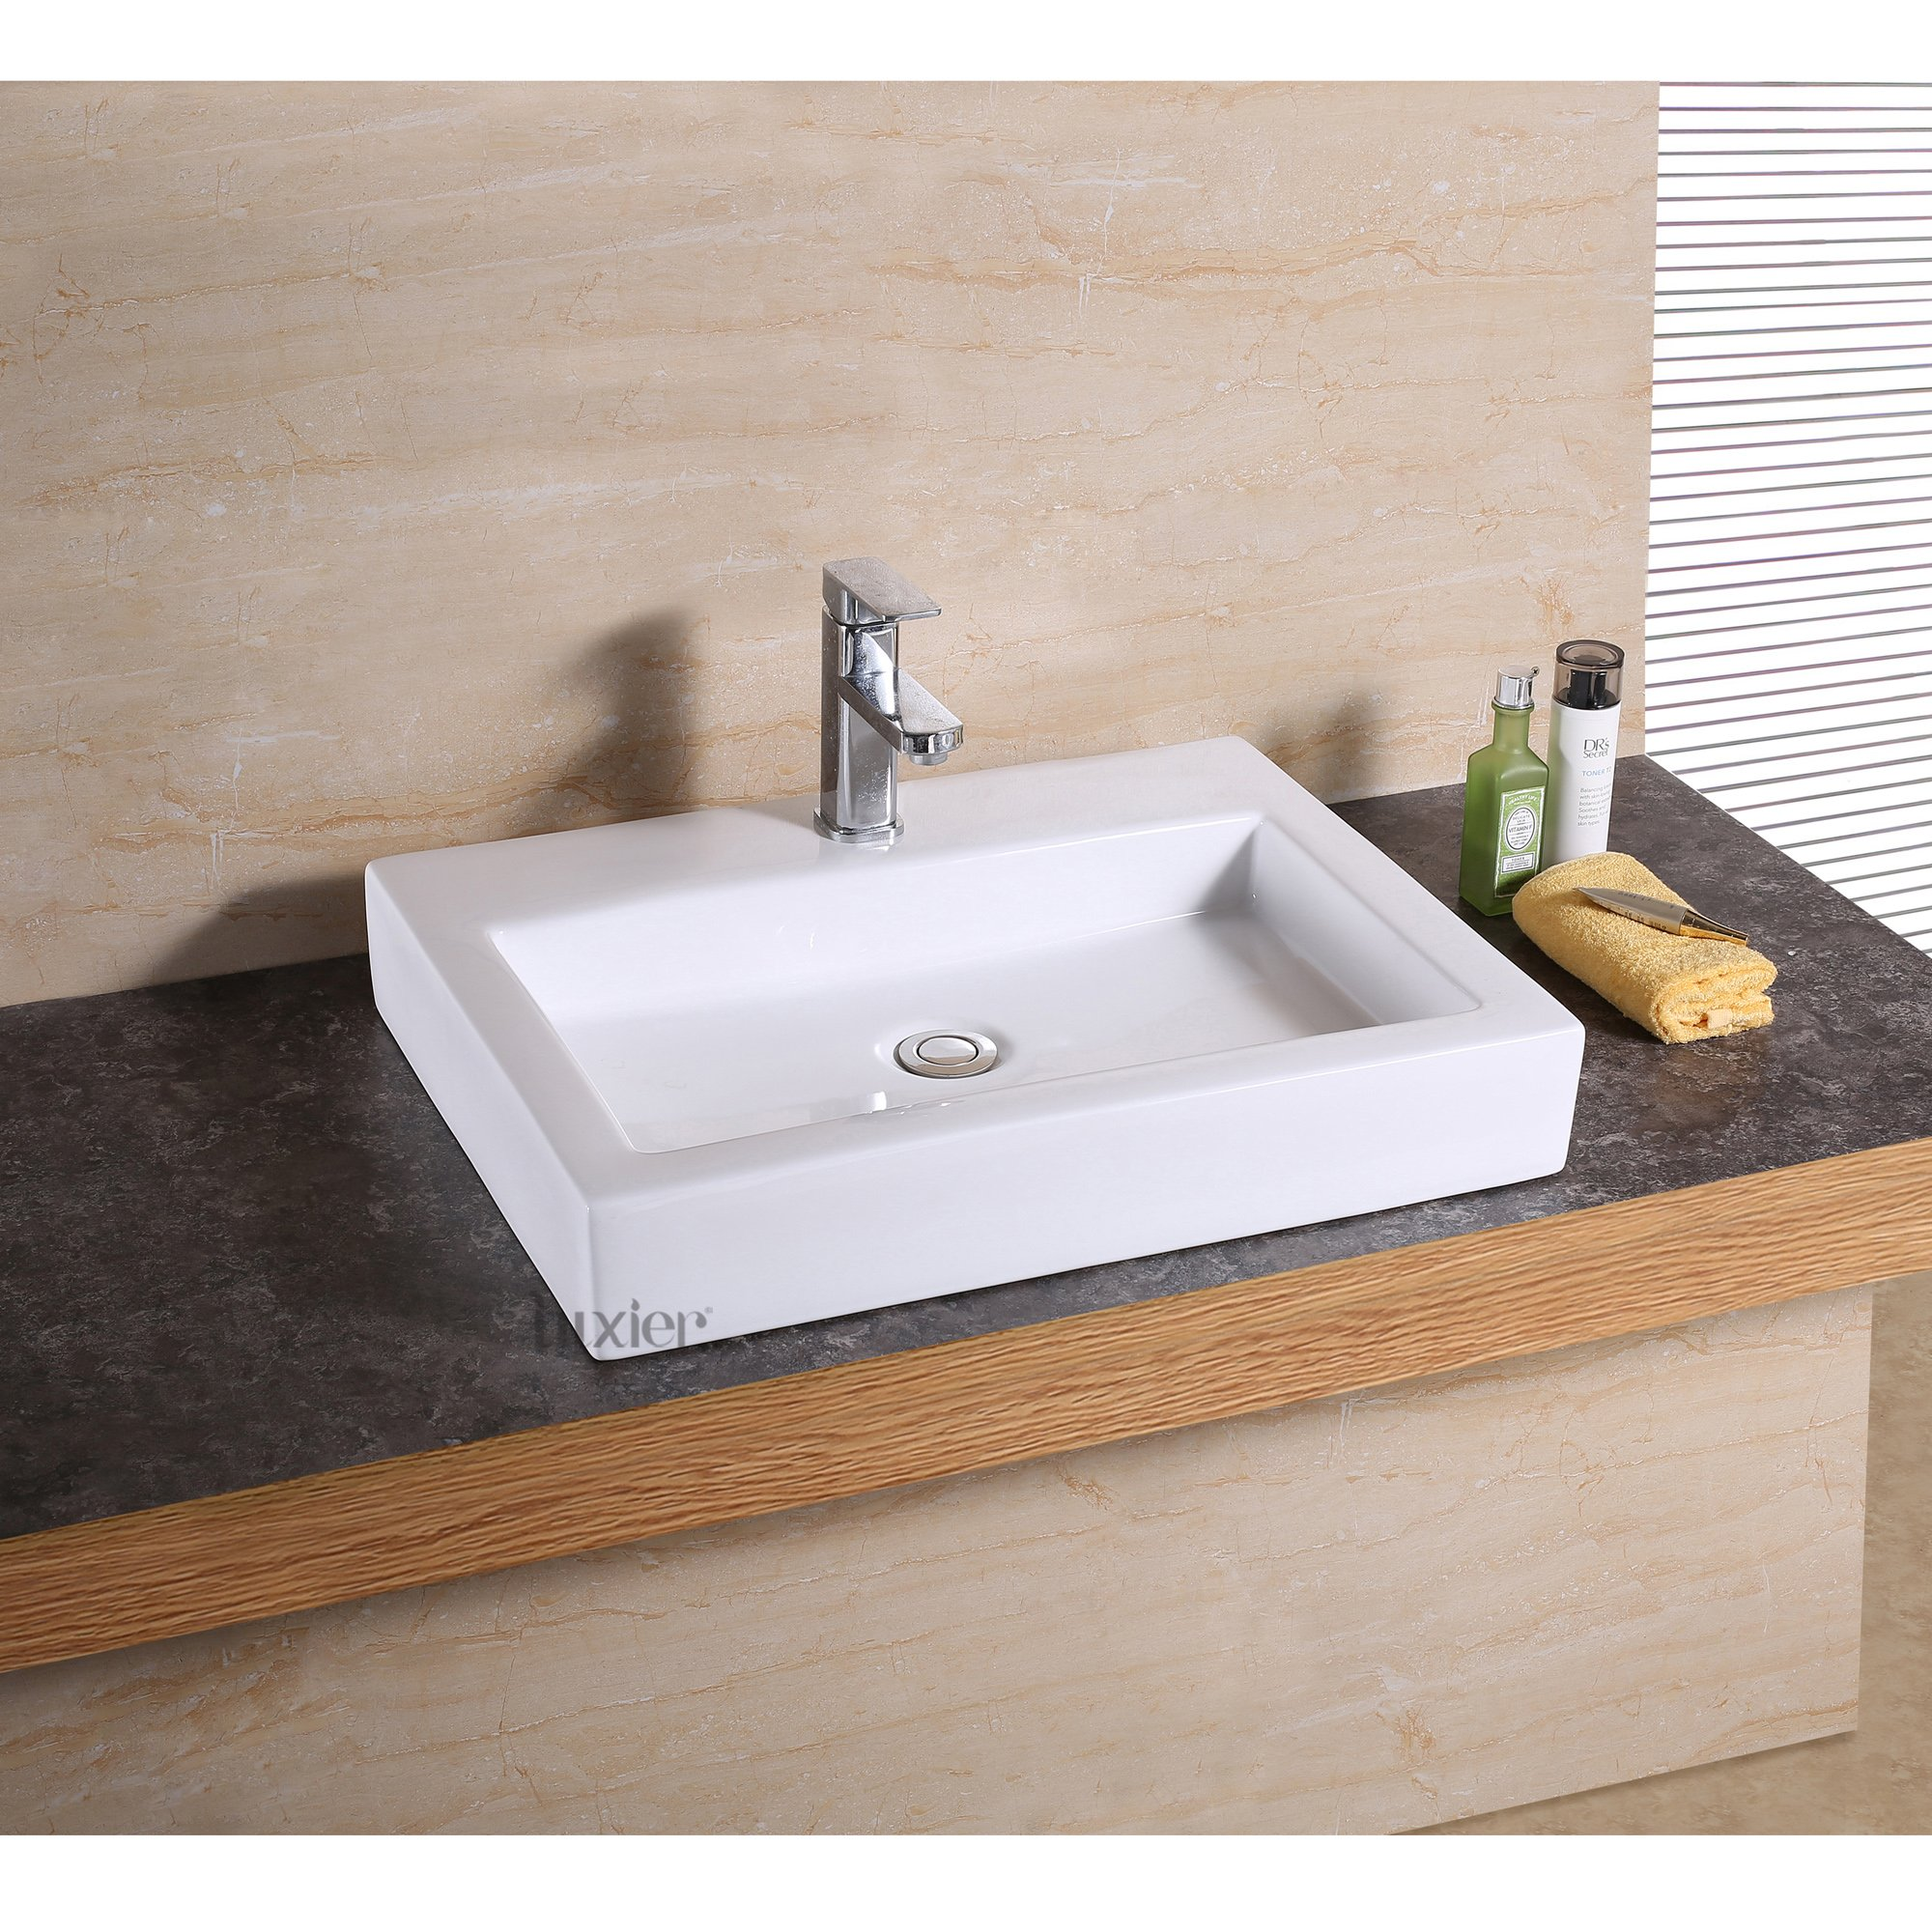 Luxier CS-021 Bathroom Porcelain Ceramic Vessel Vanity Sink Art Basin